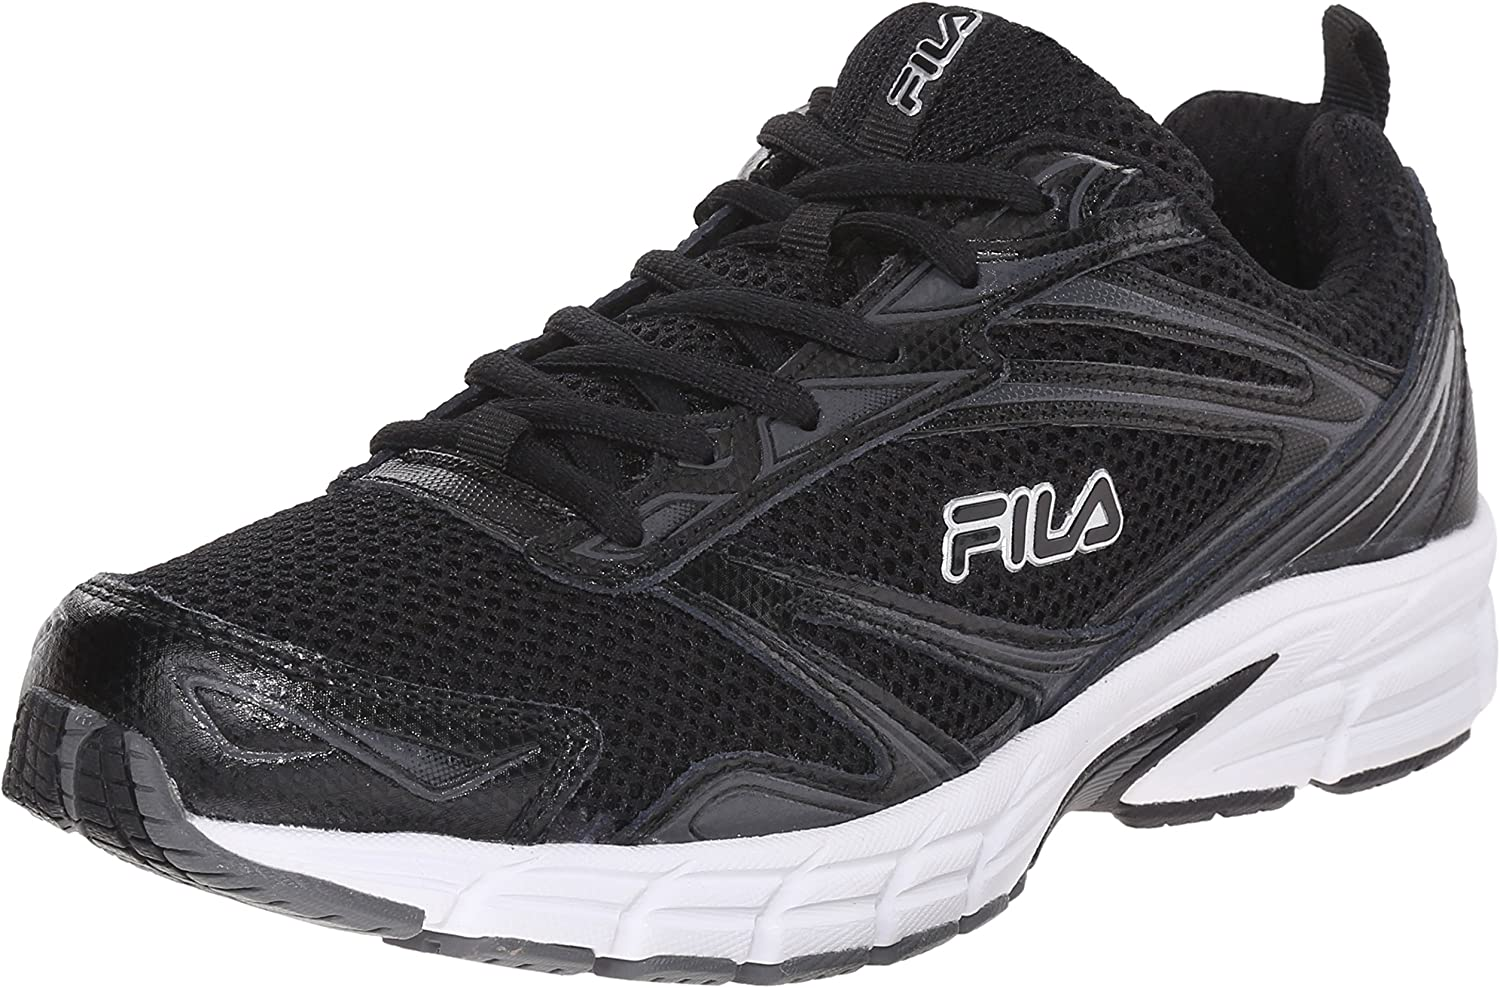 Fila Women's Selling and selling Limited price sale Royalty Shoe running